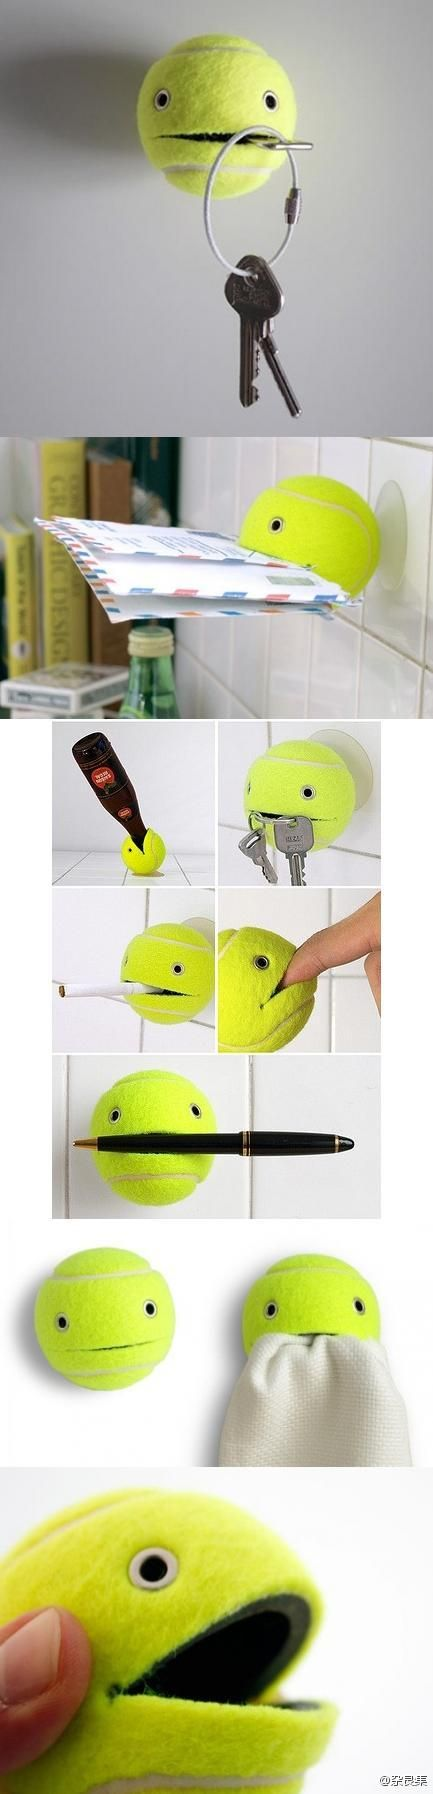 Cool idea with a tennis ball :)